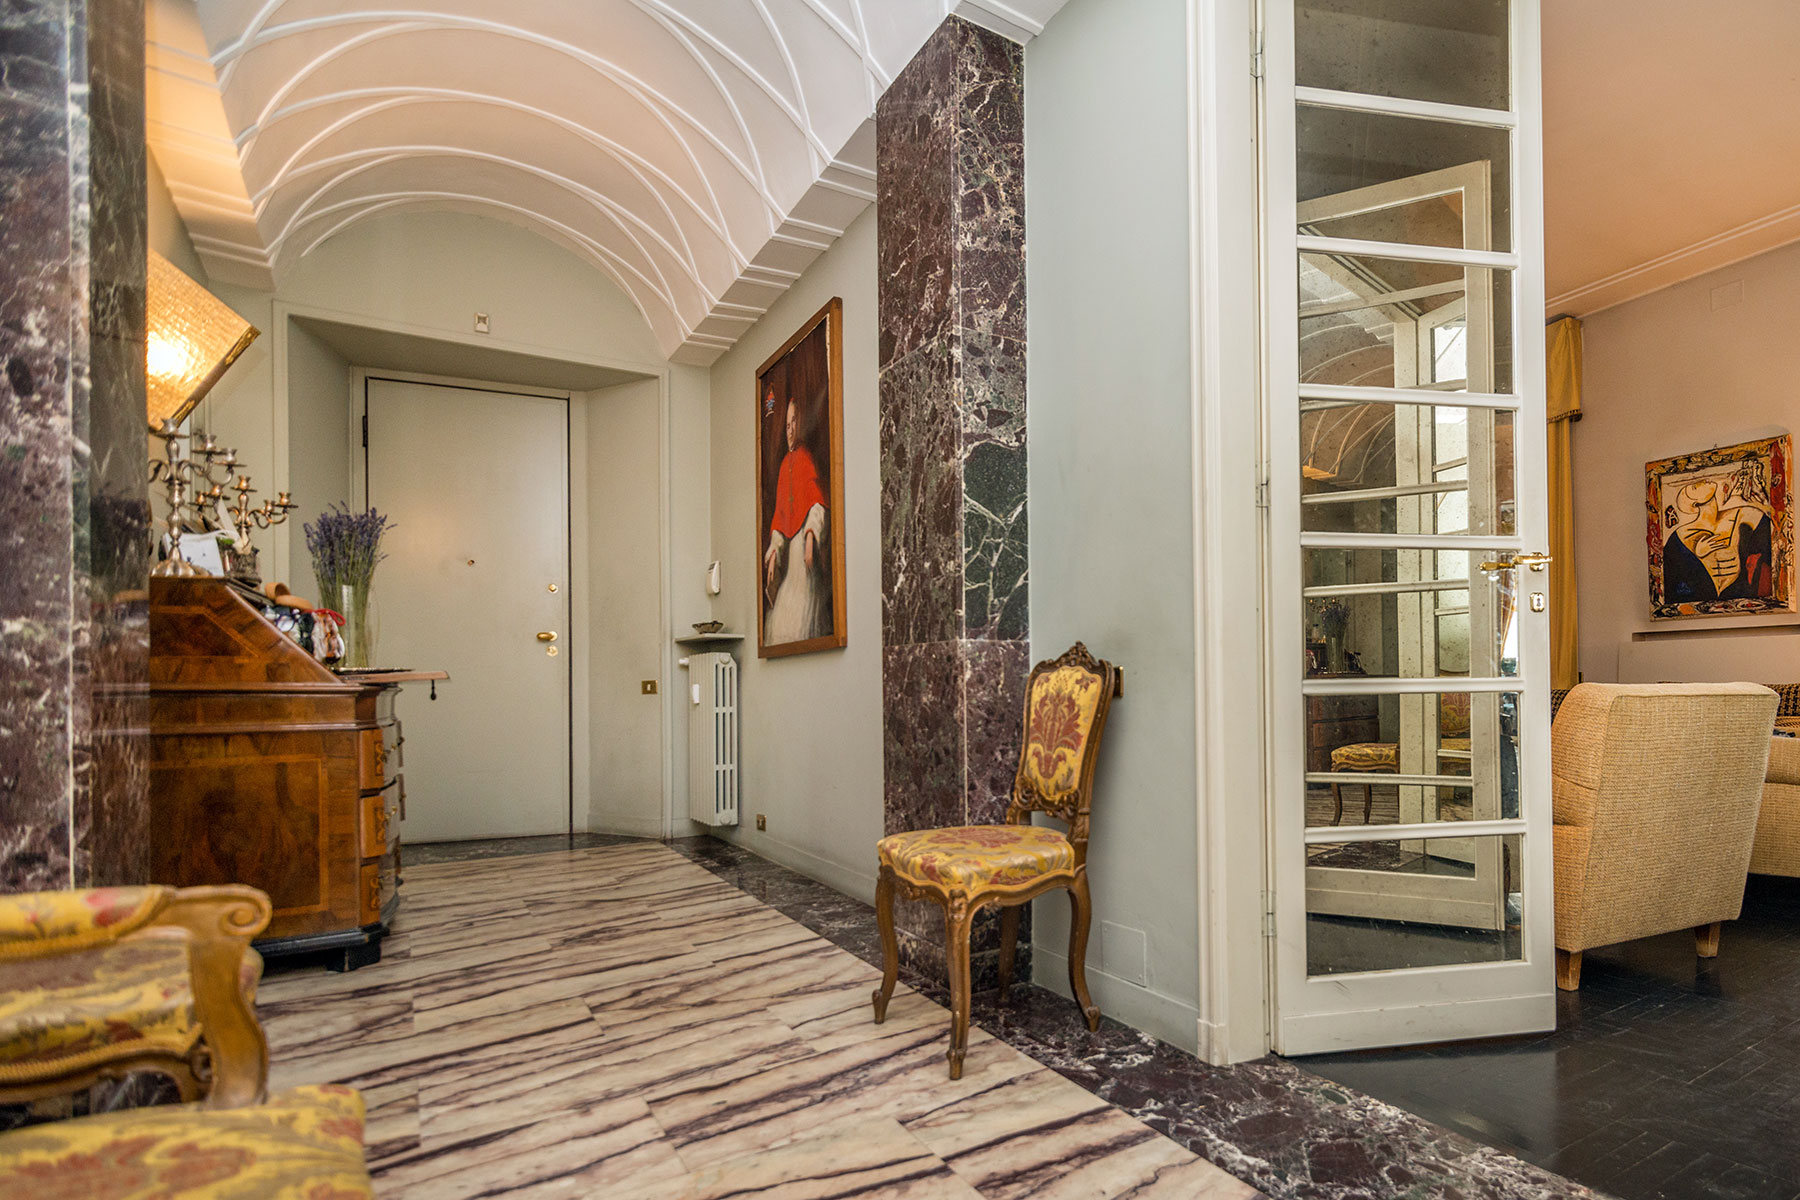 Additional photo for property listing at Elegant apartment in the historical center of Milan Via dei Giardini Milano, Milan 20100 Italie